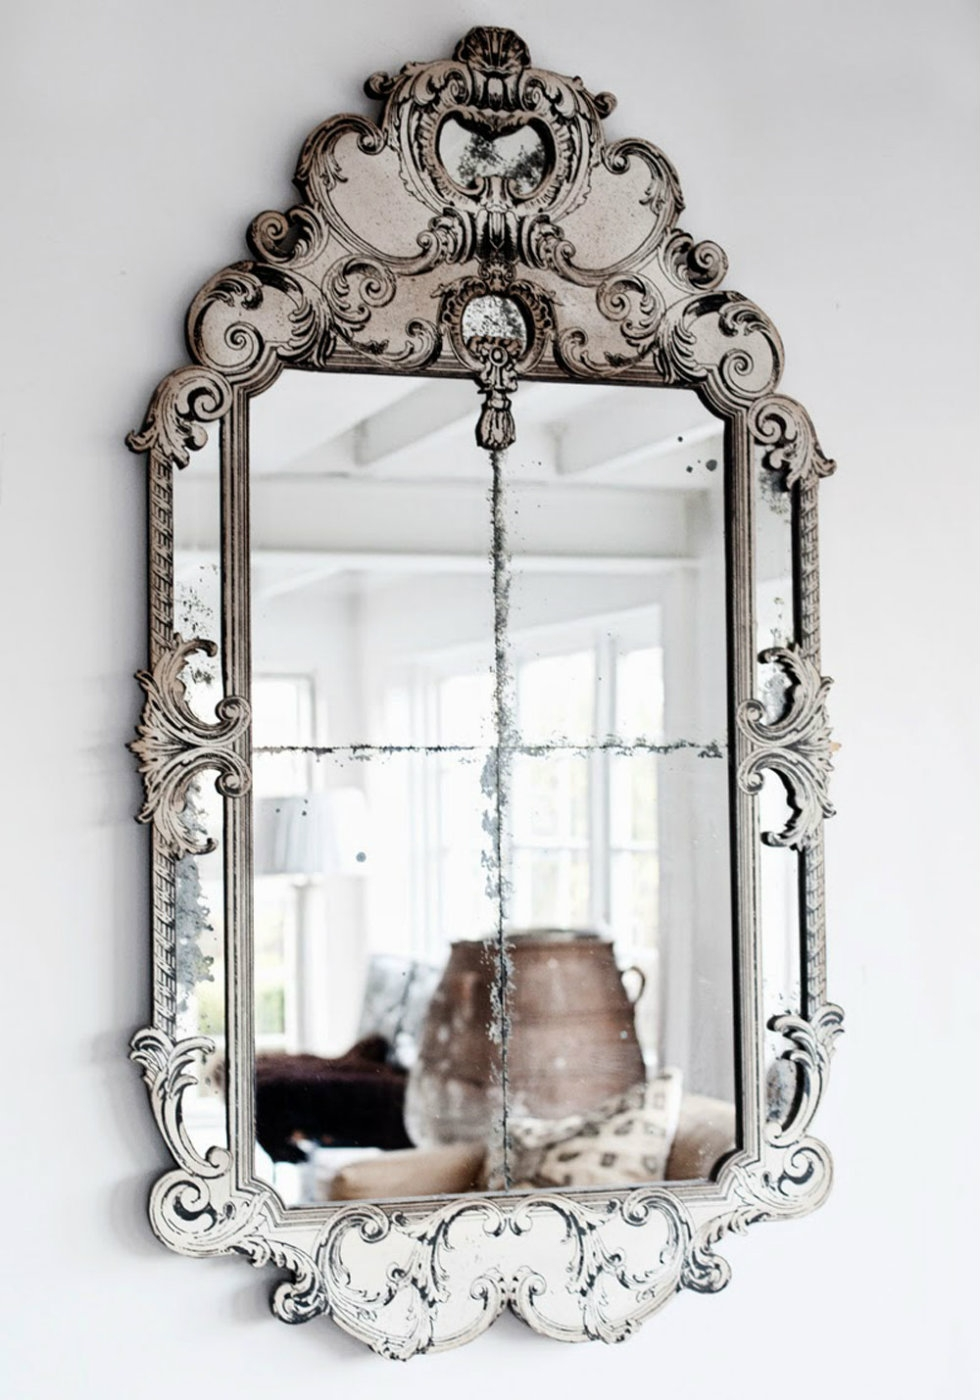 2015 Milan Design Week Trend To See Luxurious Venetian Mirrors Inside Venetian Mirrors Wholesale (Image 1 of 15)